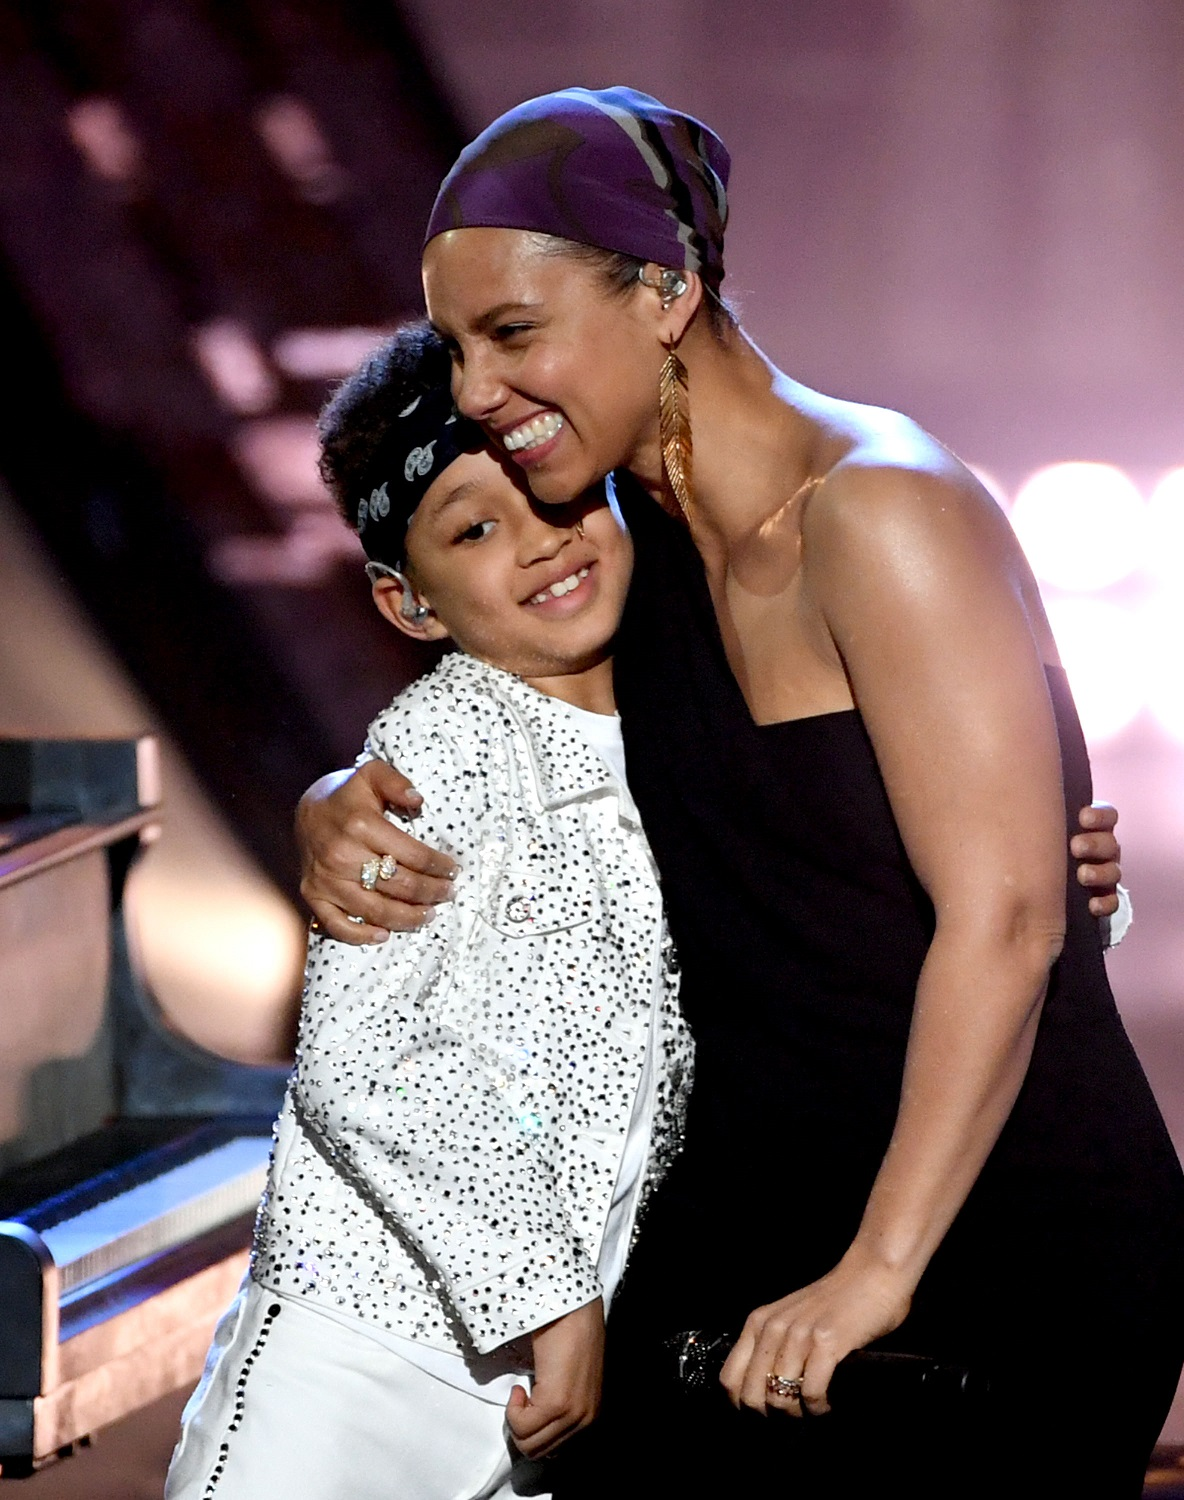 LOS ANGELES, CALIFORNIA - MARCH 14: (EDITORIAL USE ONLY. NO COMMERCIAL USE)  Alicia Keys and her son Egypt Daoud Dean perform onstage at the 2019 iHeartRadio Music Awards which broadcasted live on FOX at Microsoft Theater on March 14, 2019 in Los Angeles, California. (Photo by Kevin Winter/Getty Images for iHeartMedia)